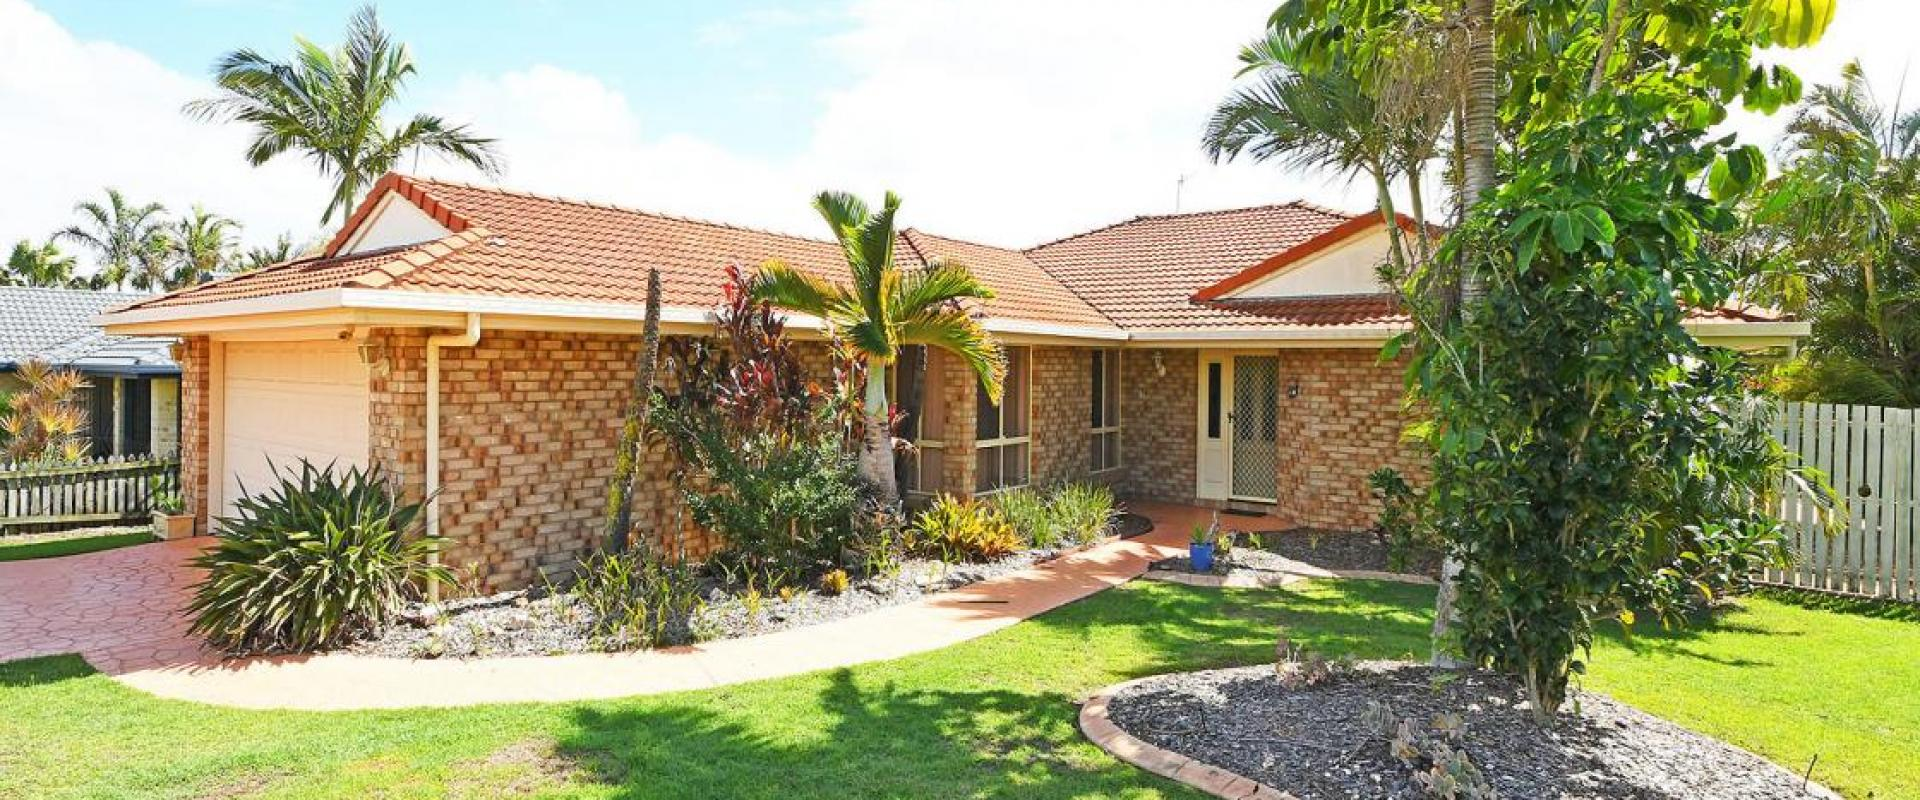 SOUGHT AFTER ELEVATED CUL DE SAC LOCATION, CLOSE TO THE HOSPITALS AND MEDICAL FACILITIES OF HERVEY BAY,  LARGE ENCLOSED ALFRESCO, SIDE ACCESS TO REAR.